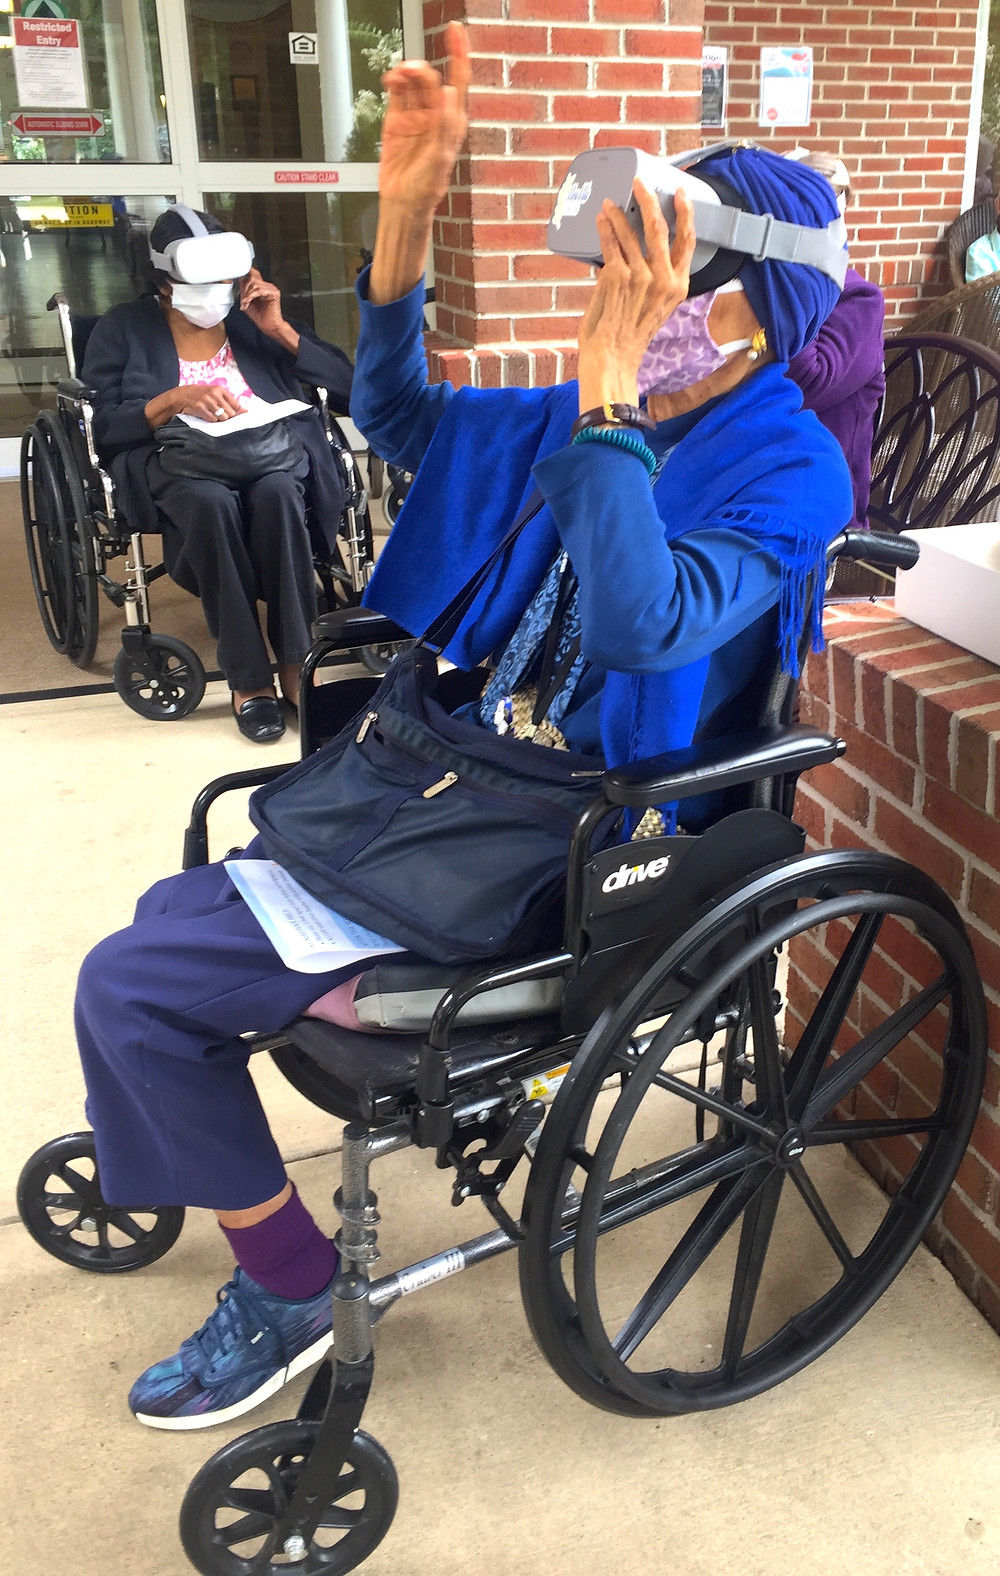 Retired people use Viva Vita virtual reality to travel around the world without leaving their wheelchair. Two women wear virtual reality headsets.